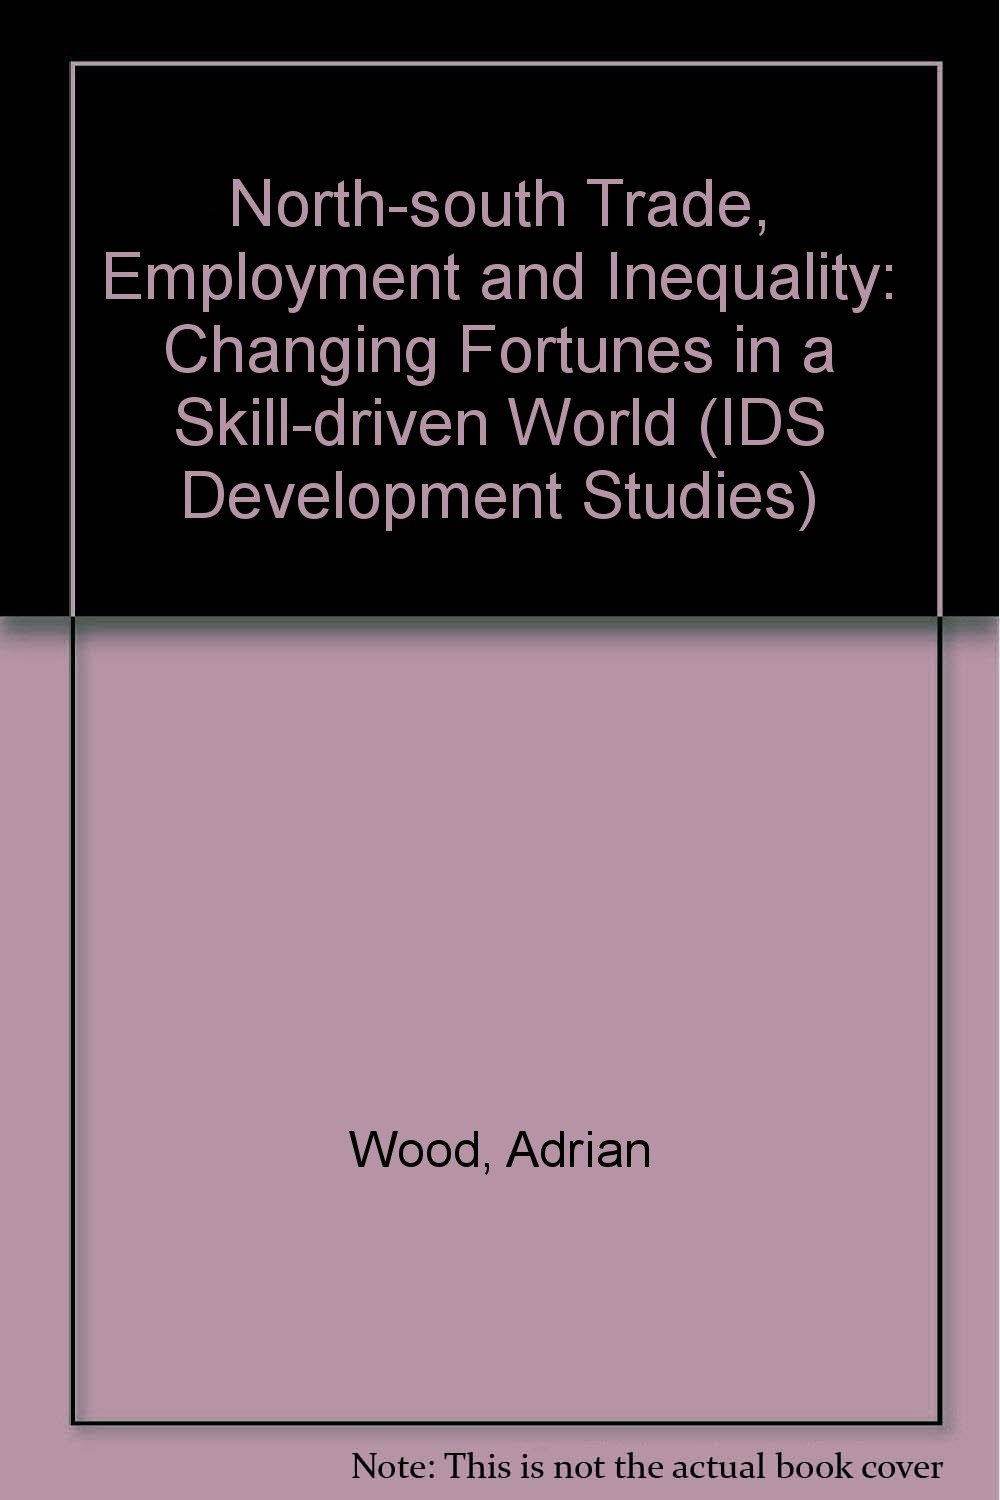 North-South Trade, Employment, and Inequality: Changing Fortunes in a Skill-Driven World (IDS Development Studies Series) by Oxford University Press